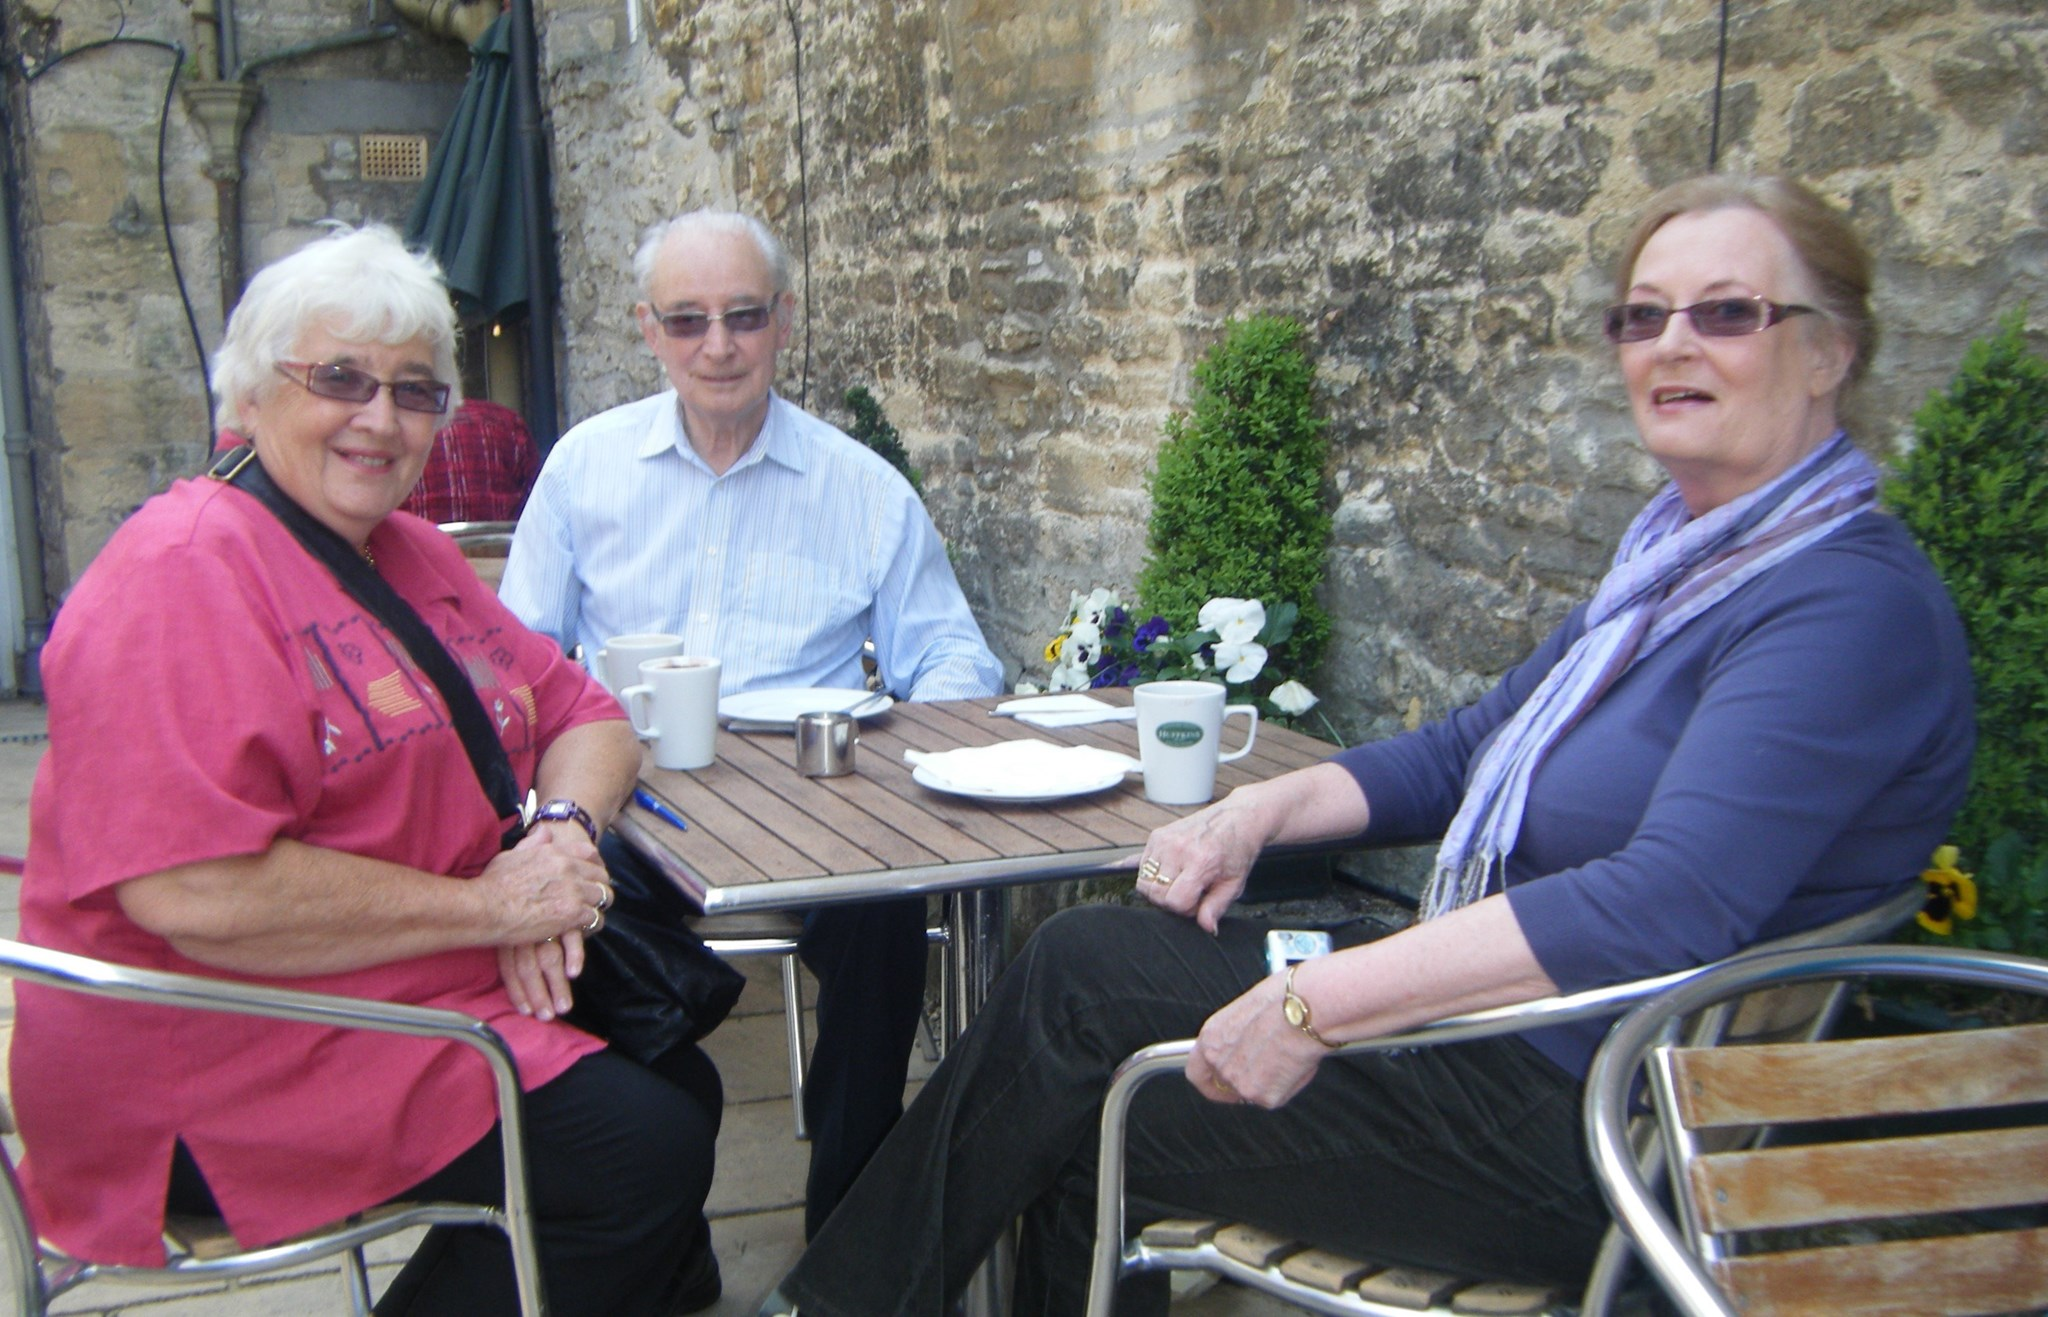 Vernie, Doug and Jill - happy time in the Cotswolds